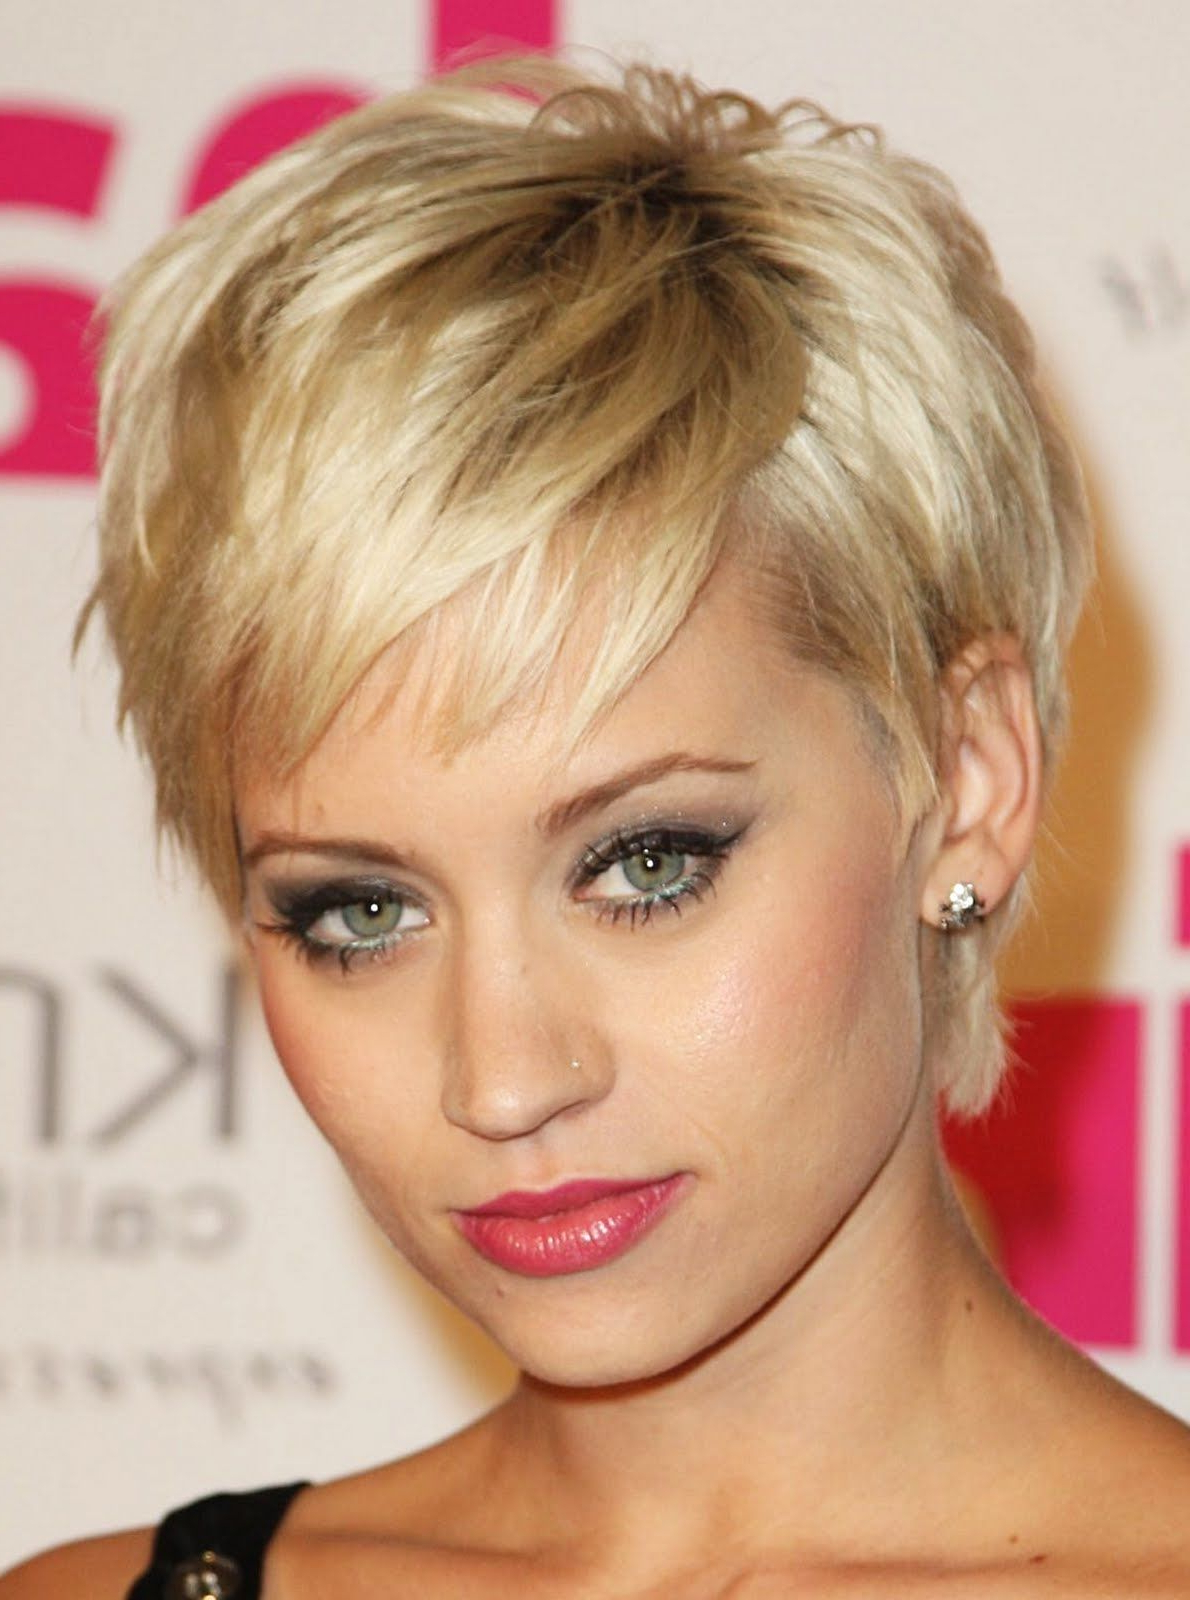 Short Hairstyles For Oval Faces | Hair Cut | Pinterest | Short Hair Intended For Short Hairstyles For Thick Hair And Long Face (View 3 of 25)